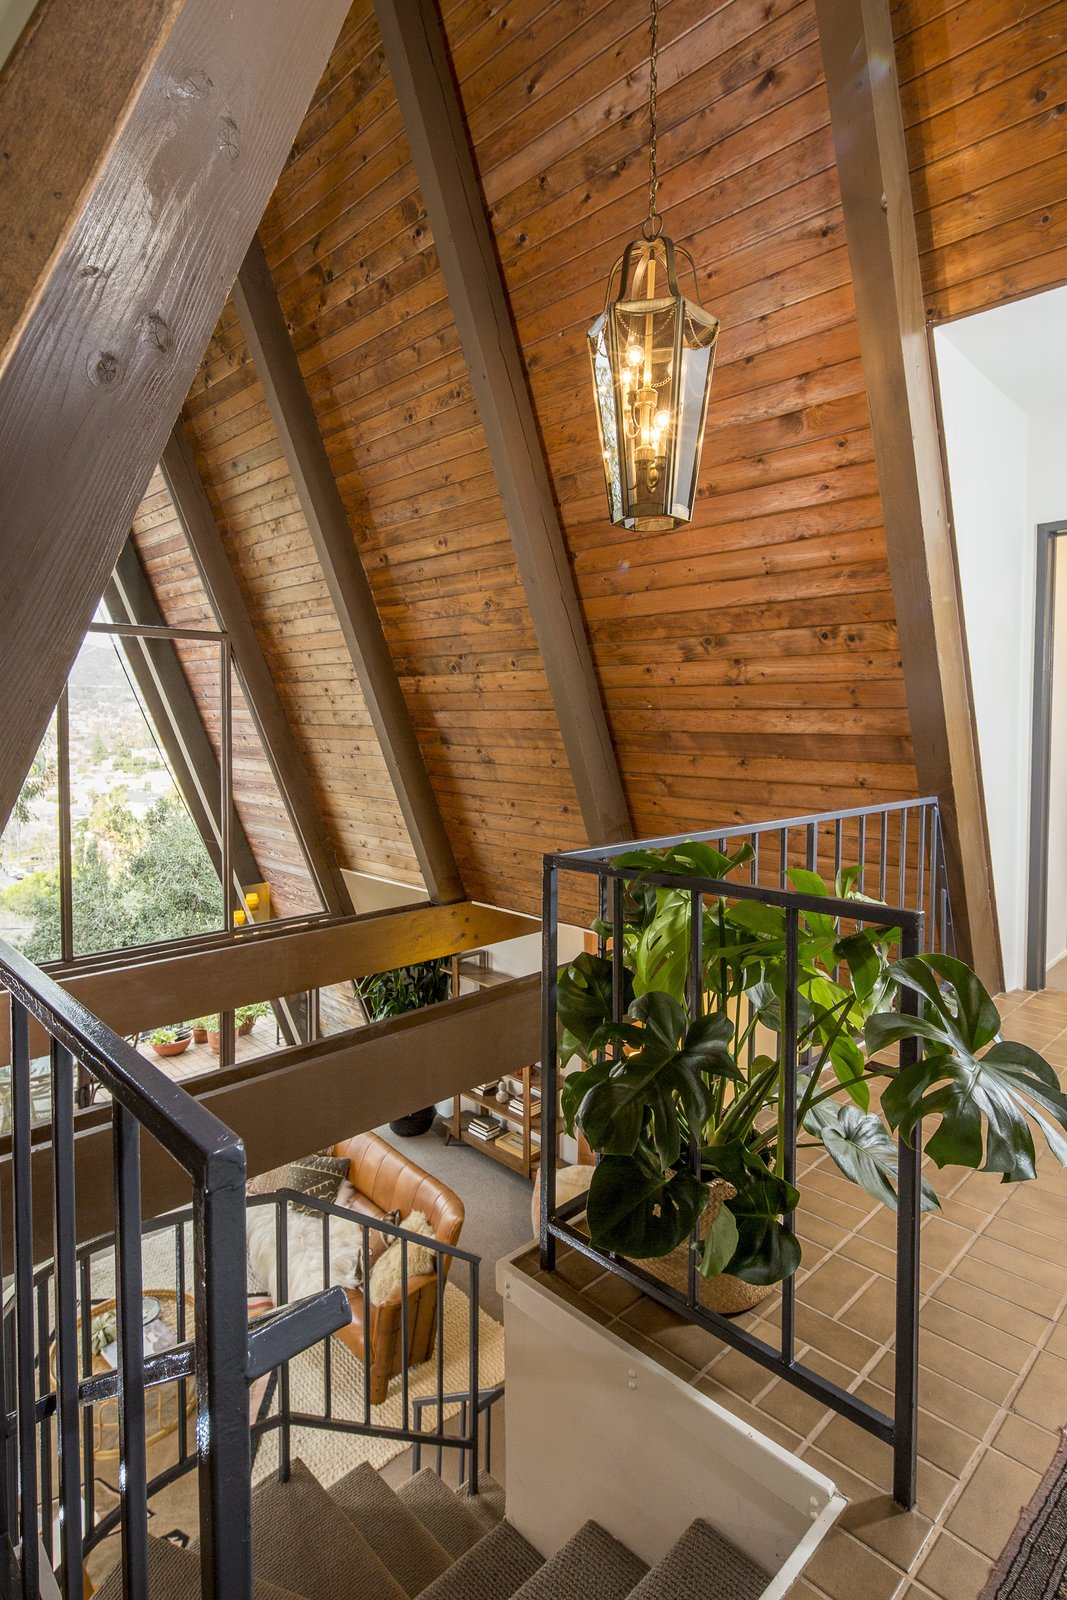 Upon entering, the foyer offers dramatic views of the San Gabriel Mountains straight ahead, framed by the wooden beams of the steeply pitched roof. On either side of the foyer are the master suite and second bedroom.  Photo 3 of 10 in A Modified A-Frame Overlooking Los Angeles Starts at $699K